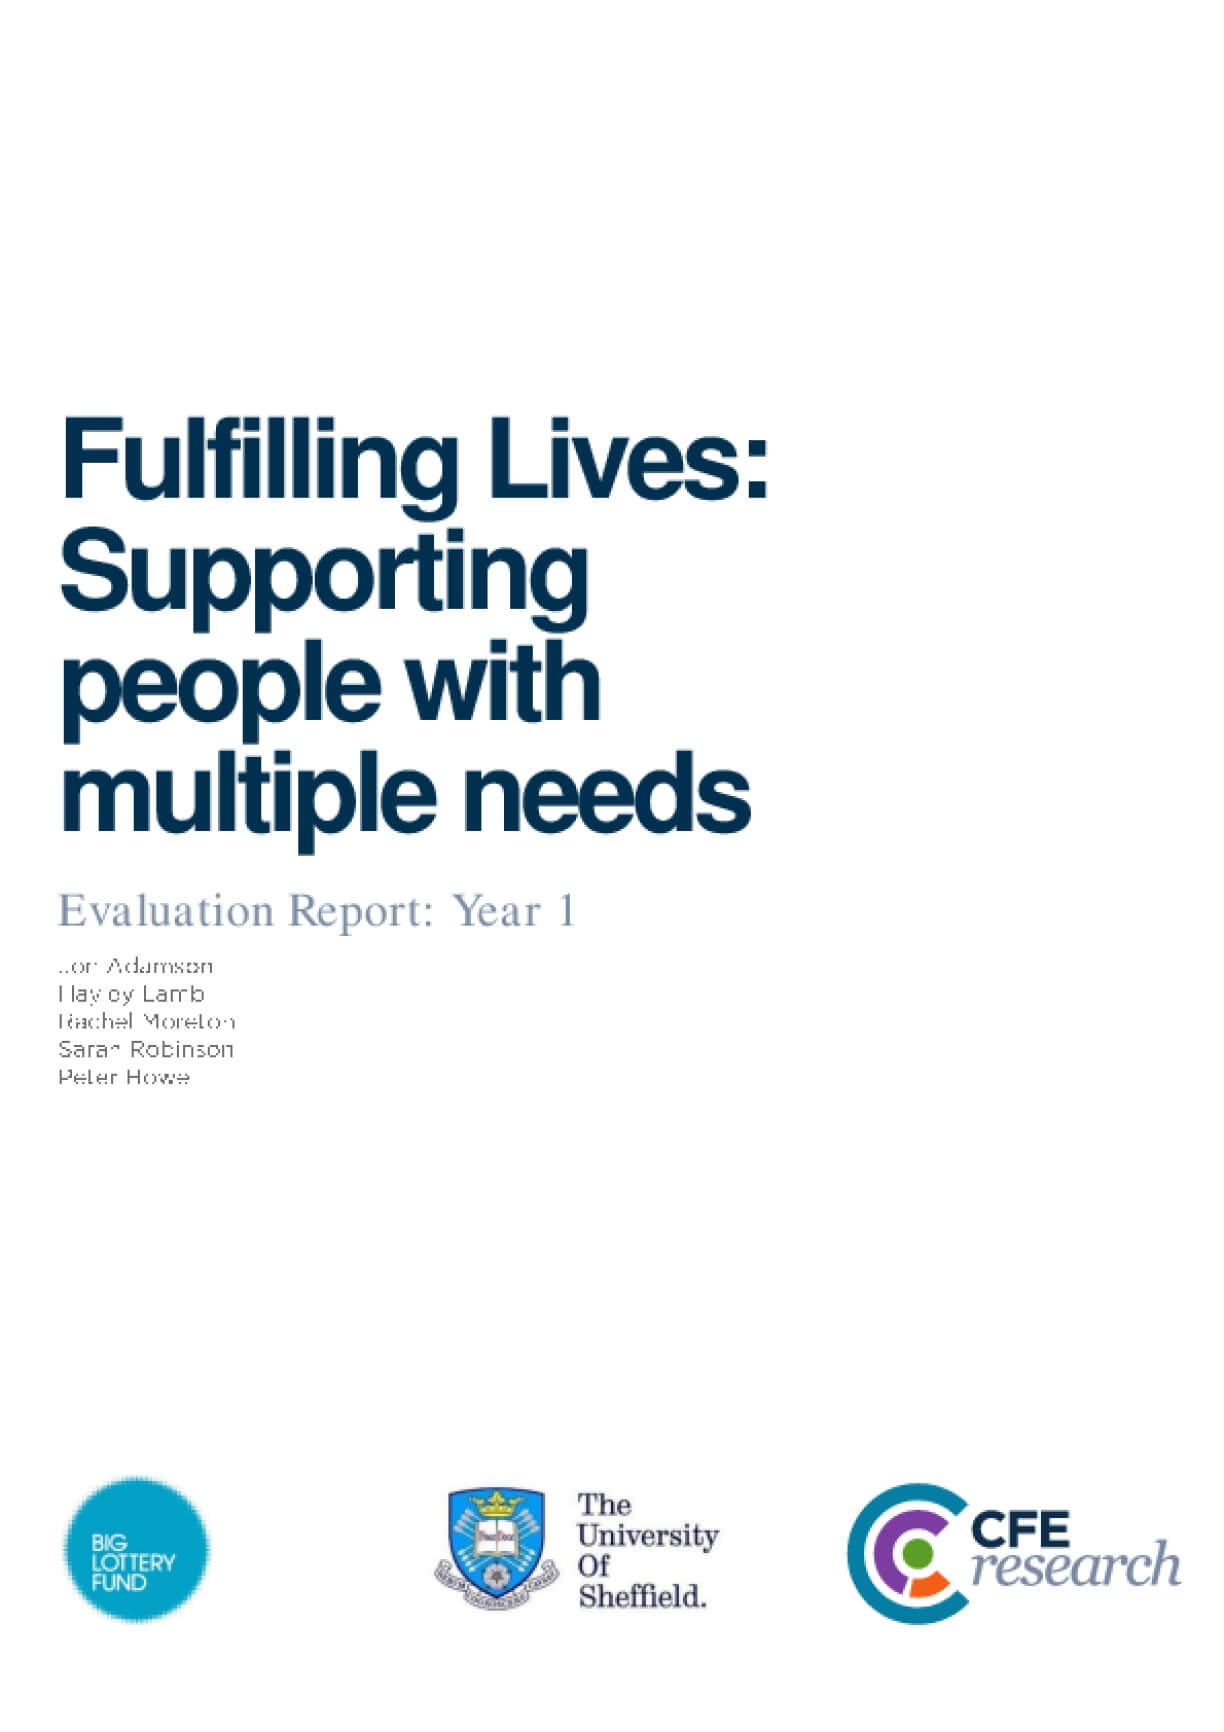 Fulfilling Lives: Supporting people with multiple needs, Evaluation Report, Year 1